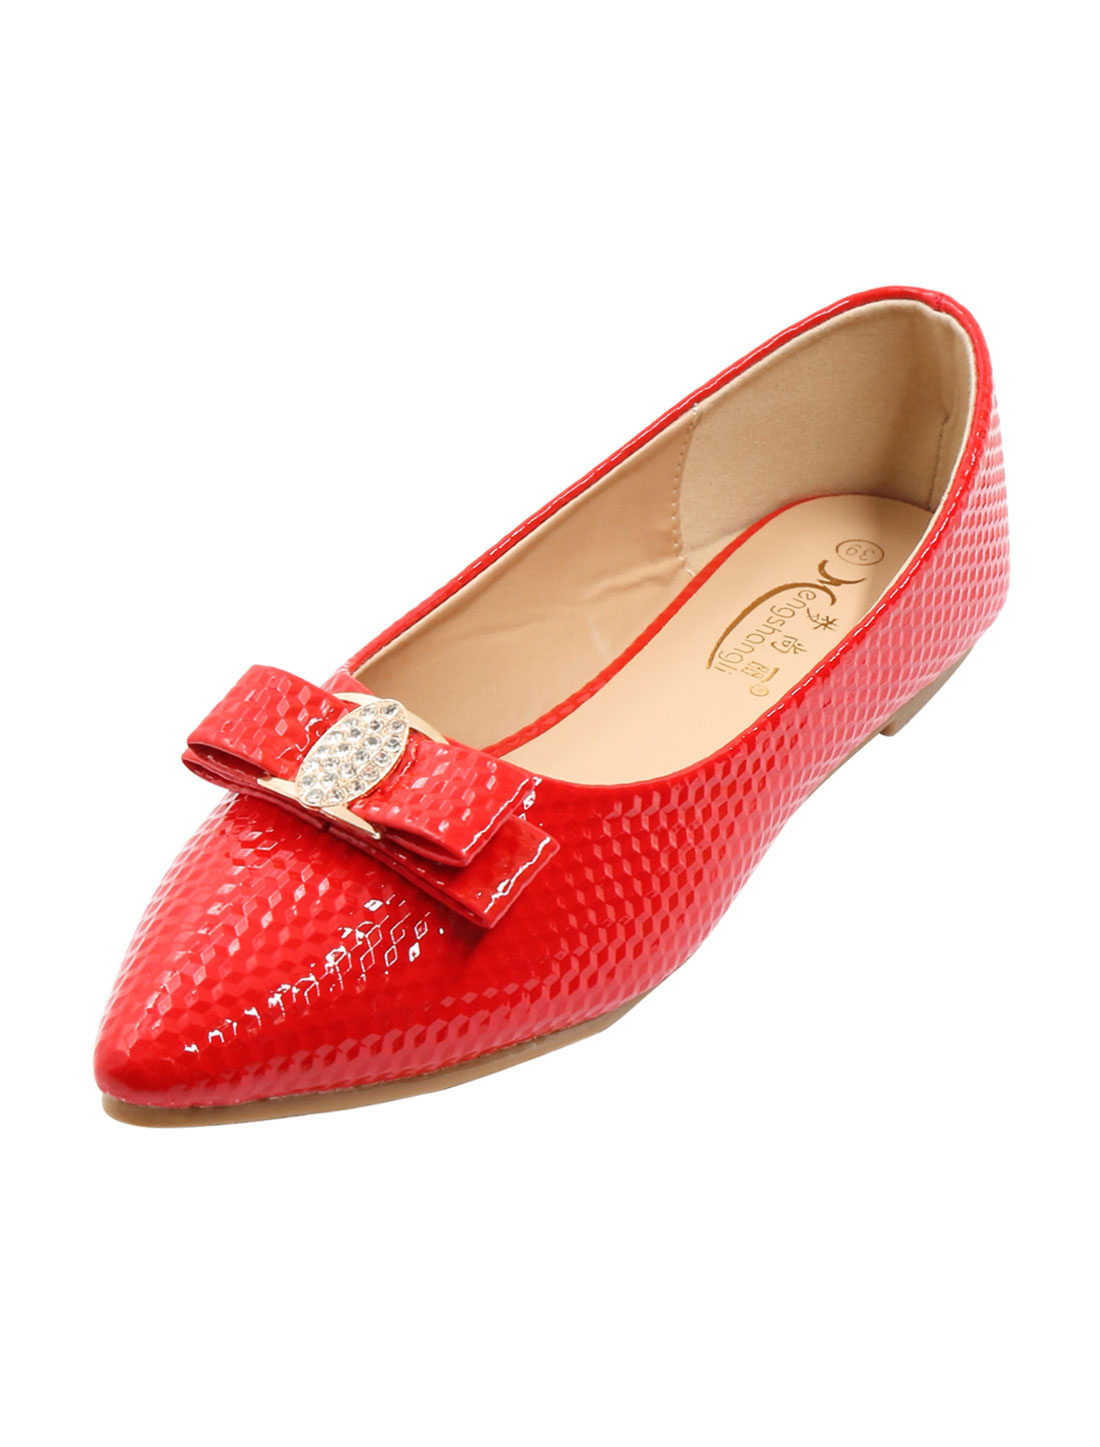 Lady Point Toe Textured Rhinestones Embellished Bow Flats Red US 8.5